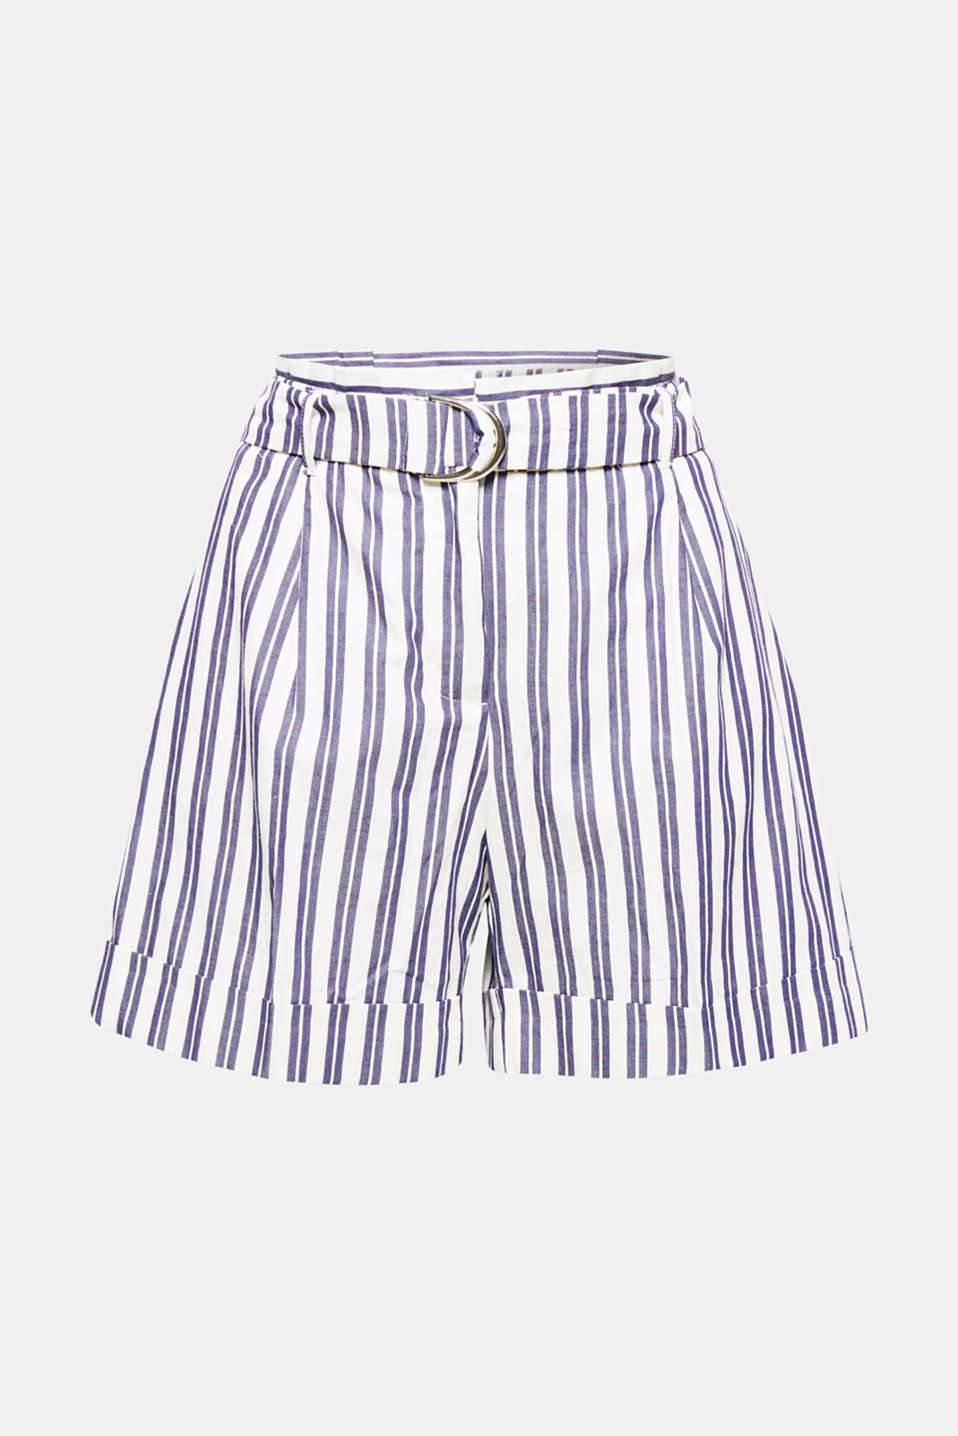 These cotton shorts in a summery retro chic design have a stylish pleated paperbag waistband and fabulous marquee stripes!